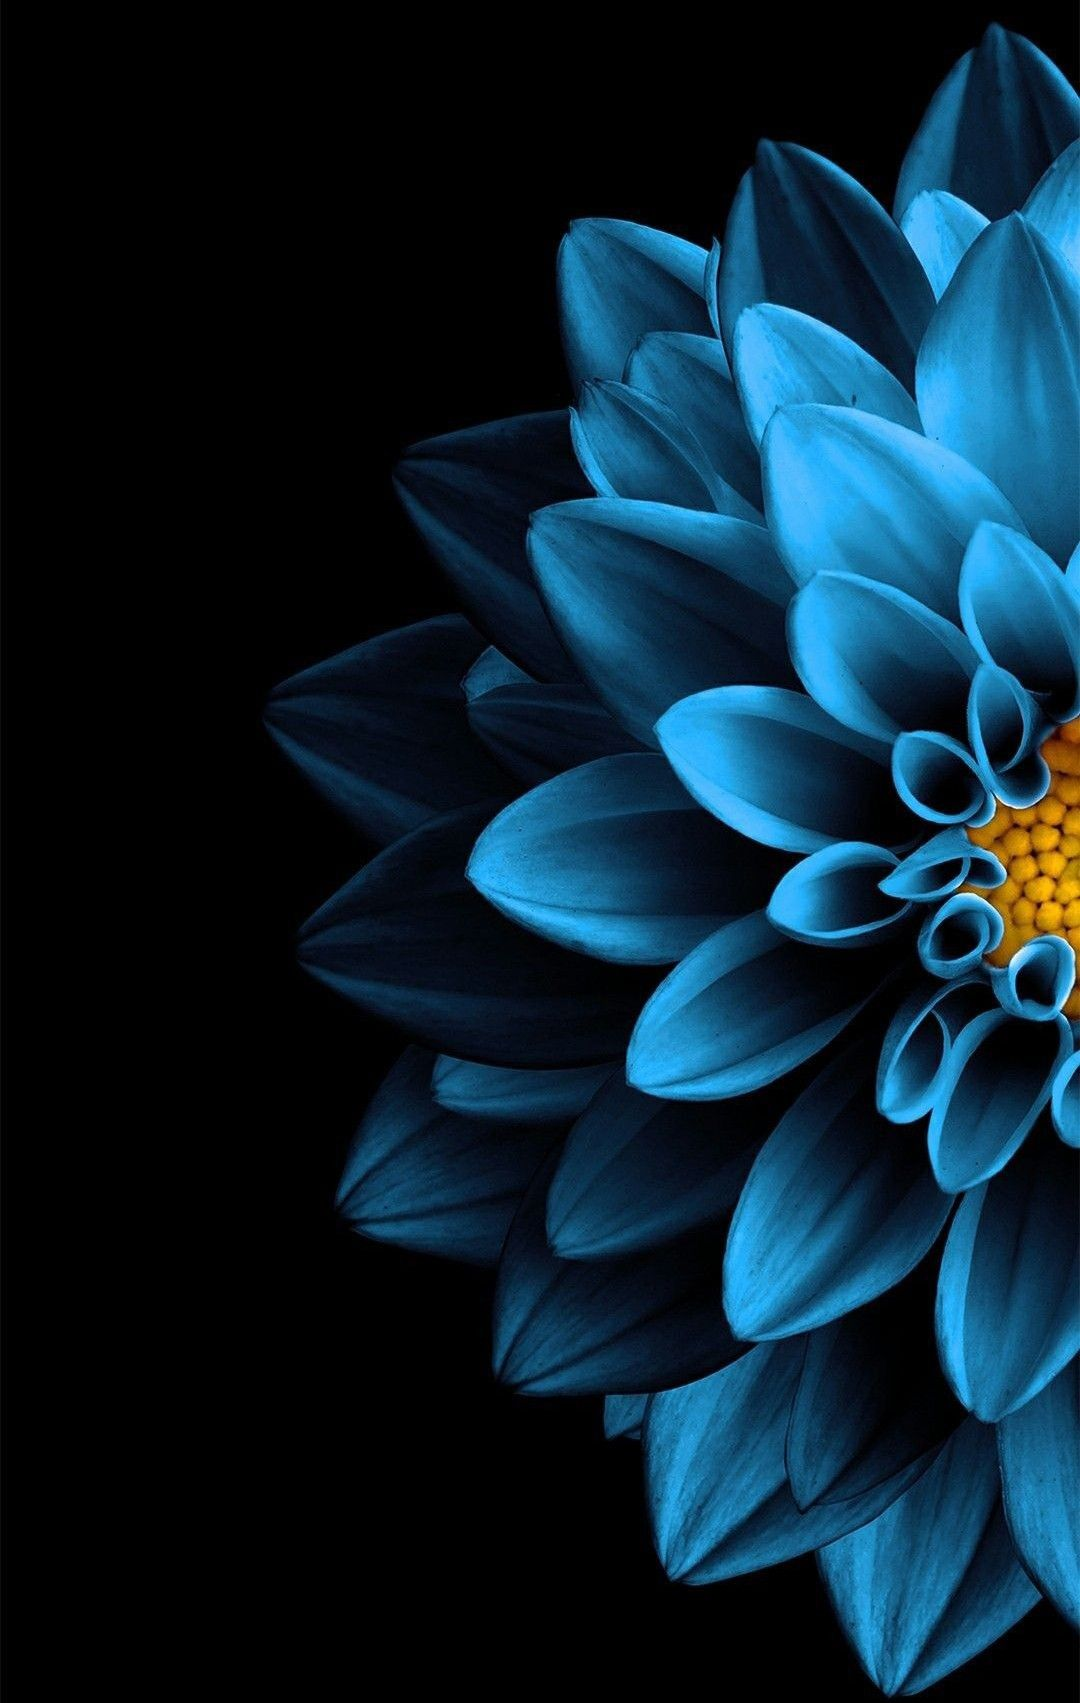 Pin By John Louis On Dahlias 2 Black Background Wallpaper Flower Background Iphone Blue Wallpaper Iphone